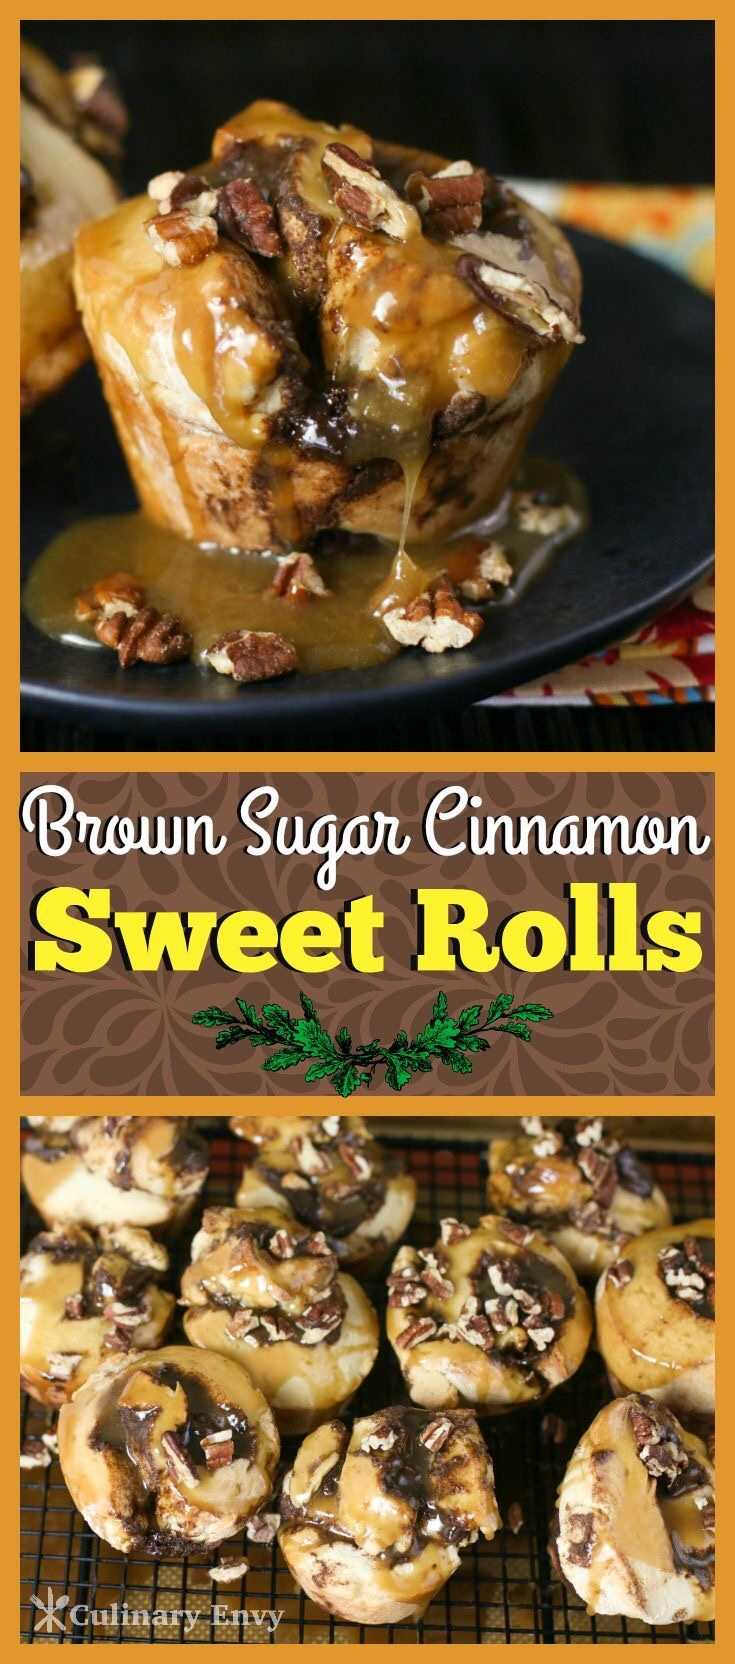 The Best Breakfast Sweet Roll Recipes - Sweet Roll Recipes, Sweet Roll, Cinnamon Rolls, Cinnamon Roll Recipe, Breakfast Sweet Roll Recipes, Breakfast Sweet Roll